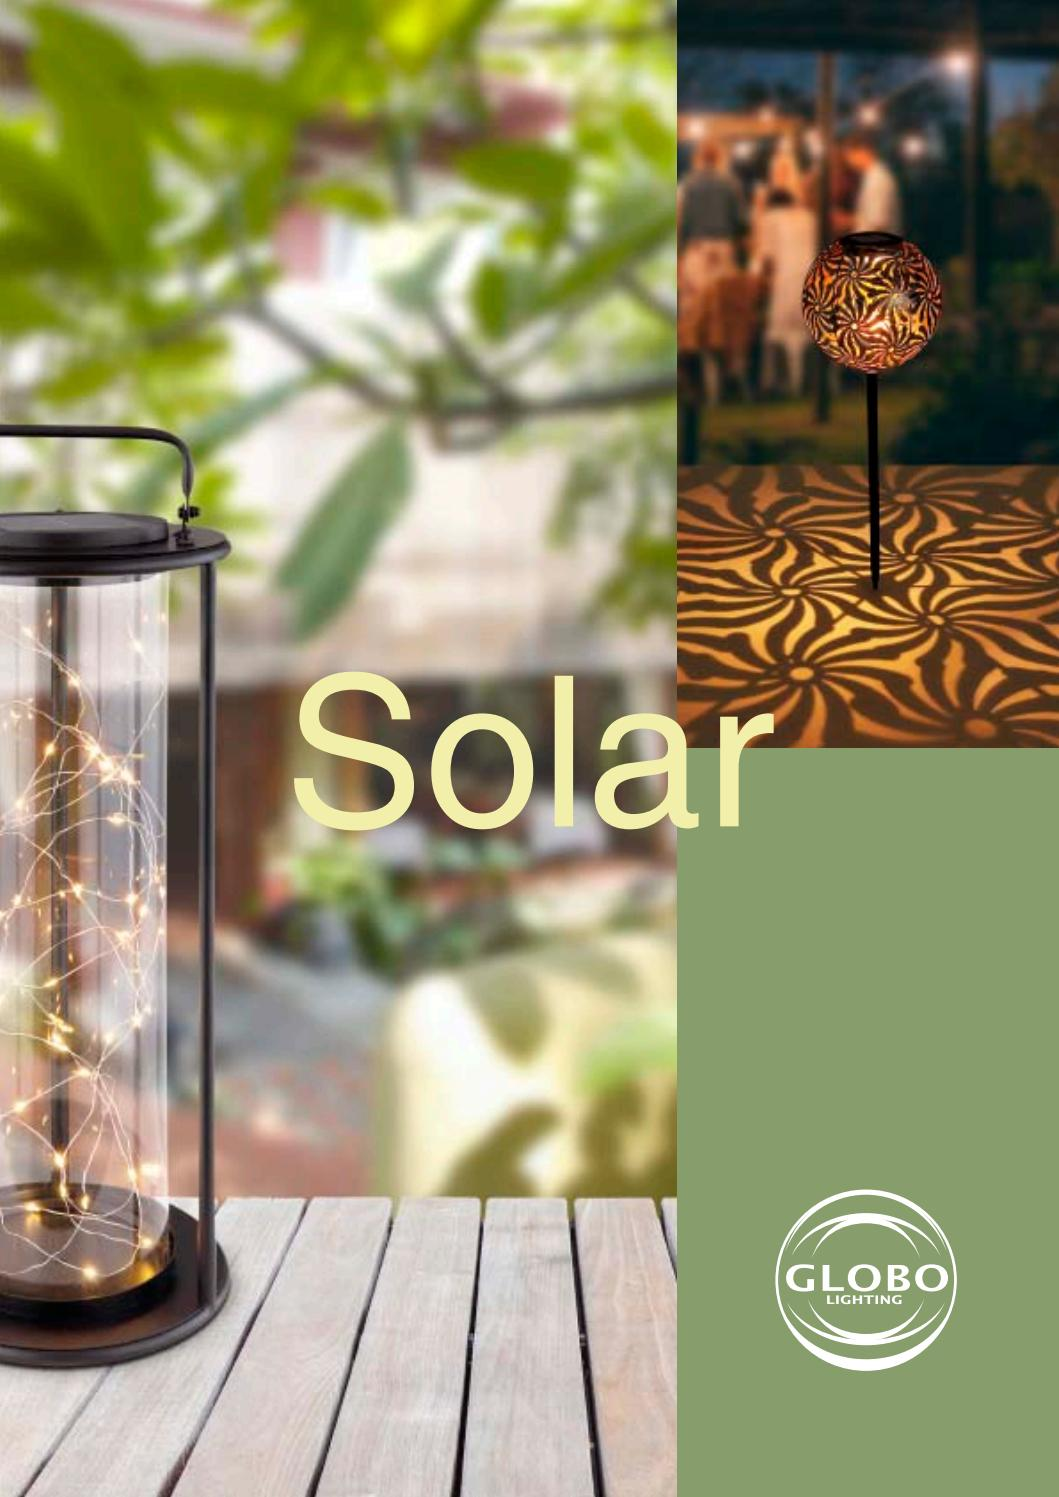 Solar Katalog By Globo Lighting Issuu